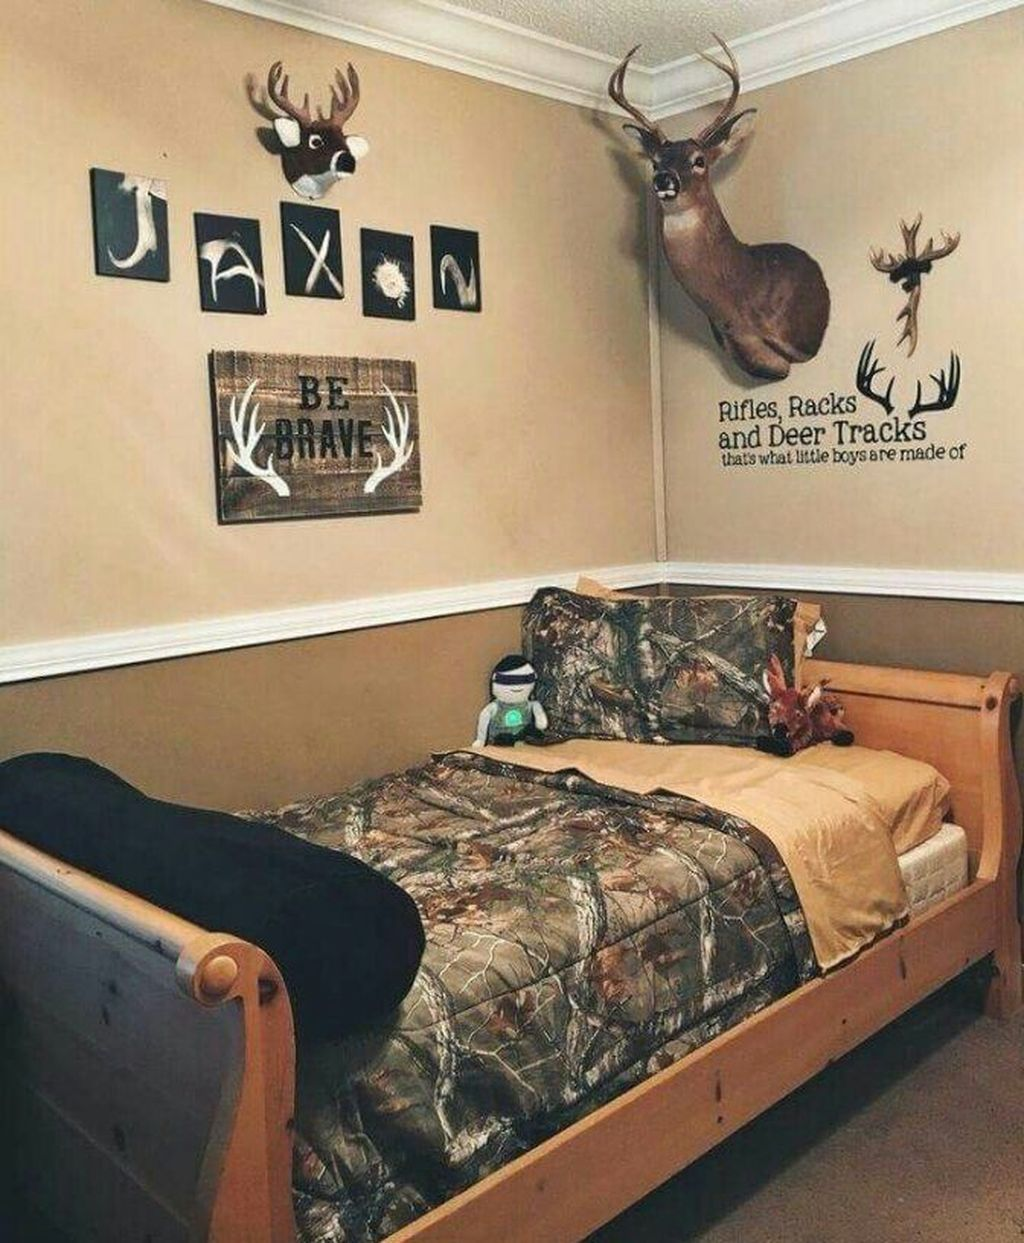 20 Affordable Bedroom Decor Ideas For Your Little Boys Trenduhome Affordable Bedroom Decor Boy Room Affordable Bedroom